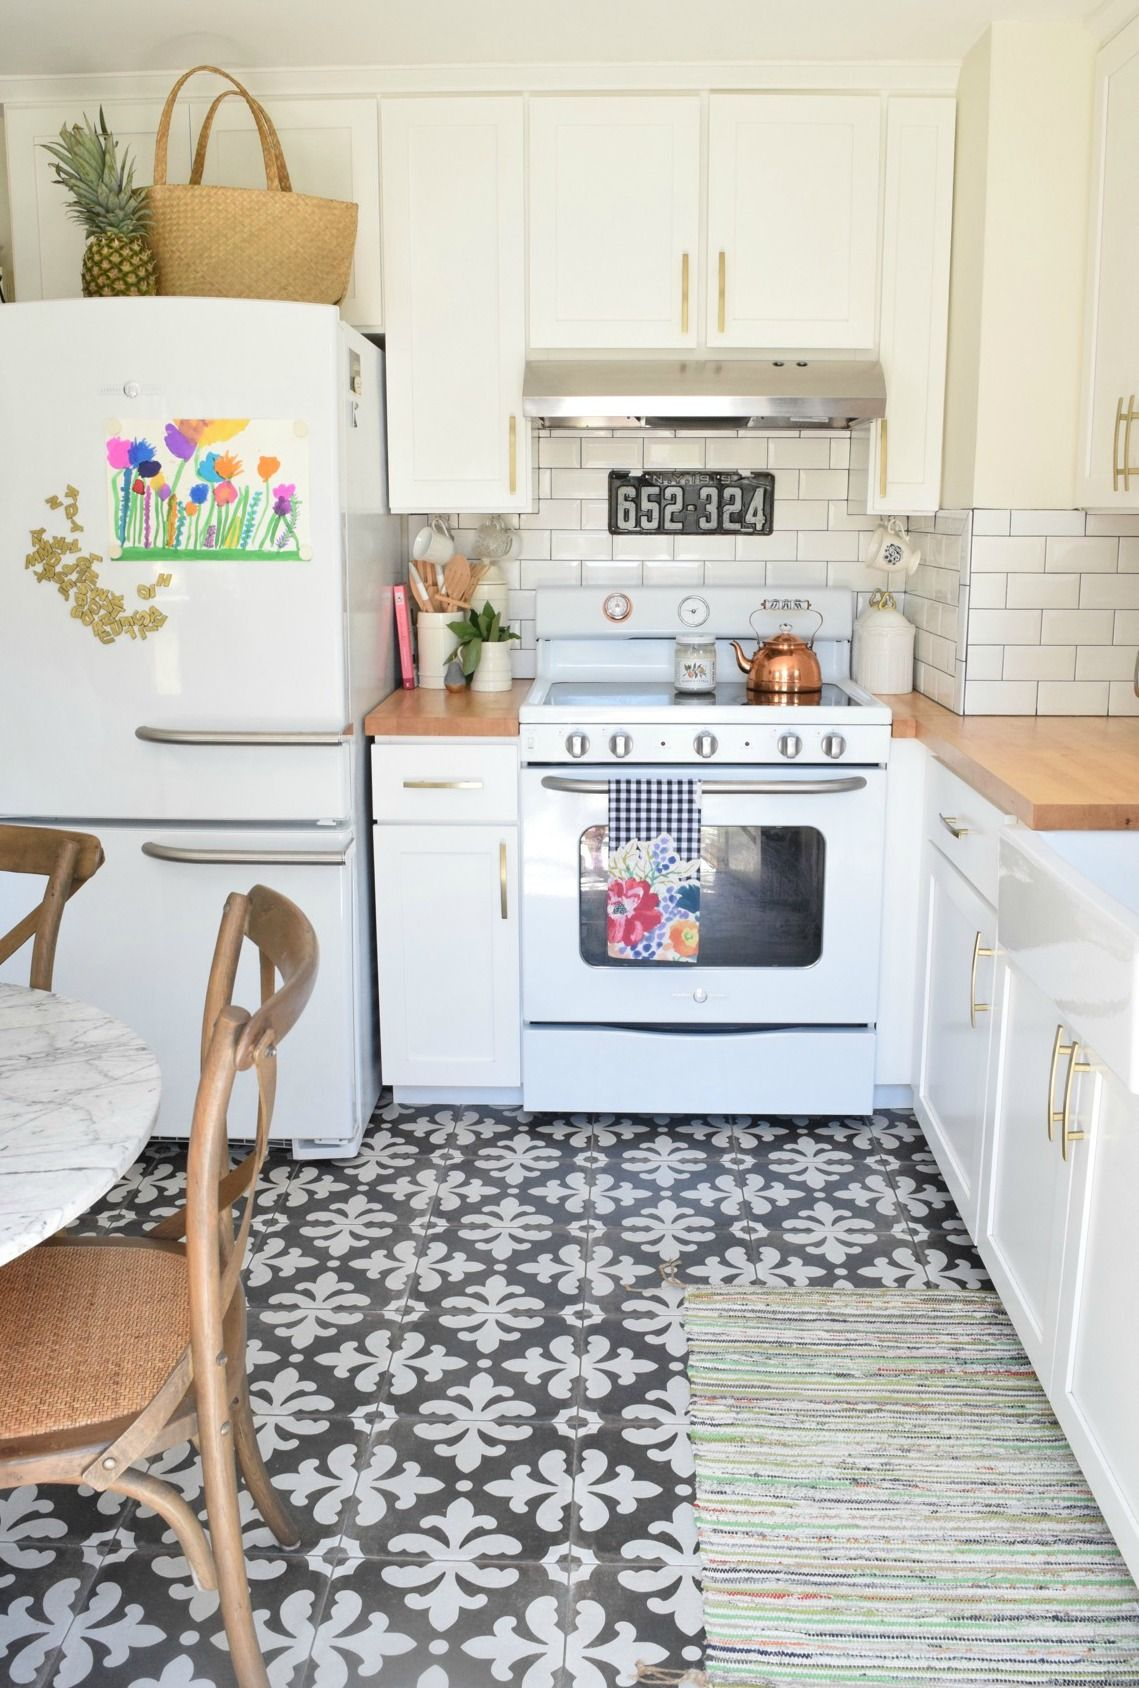 Tile N Decor Summer Home Tour And Seasonal Decor Changes  Kitchen Updates